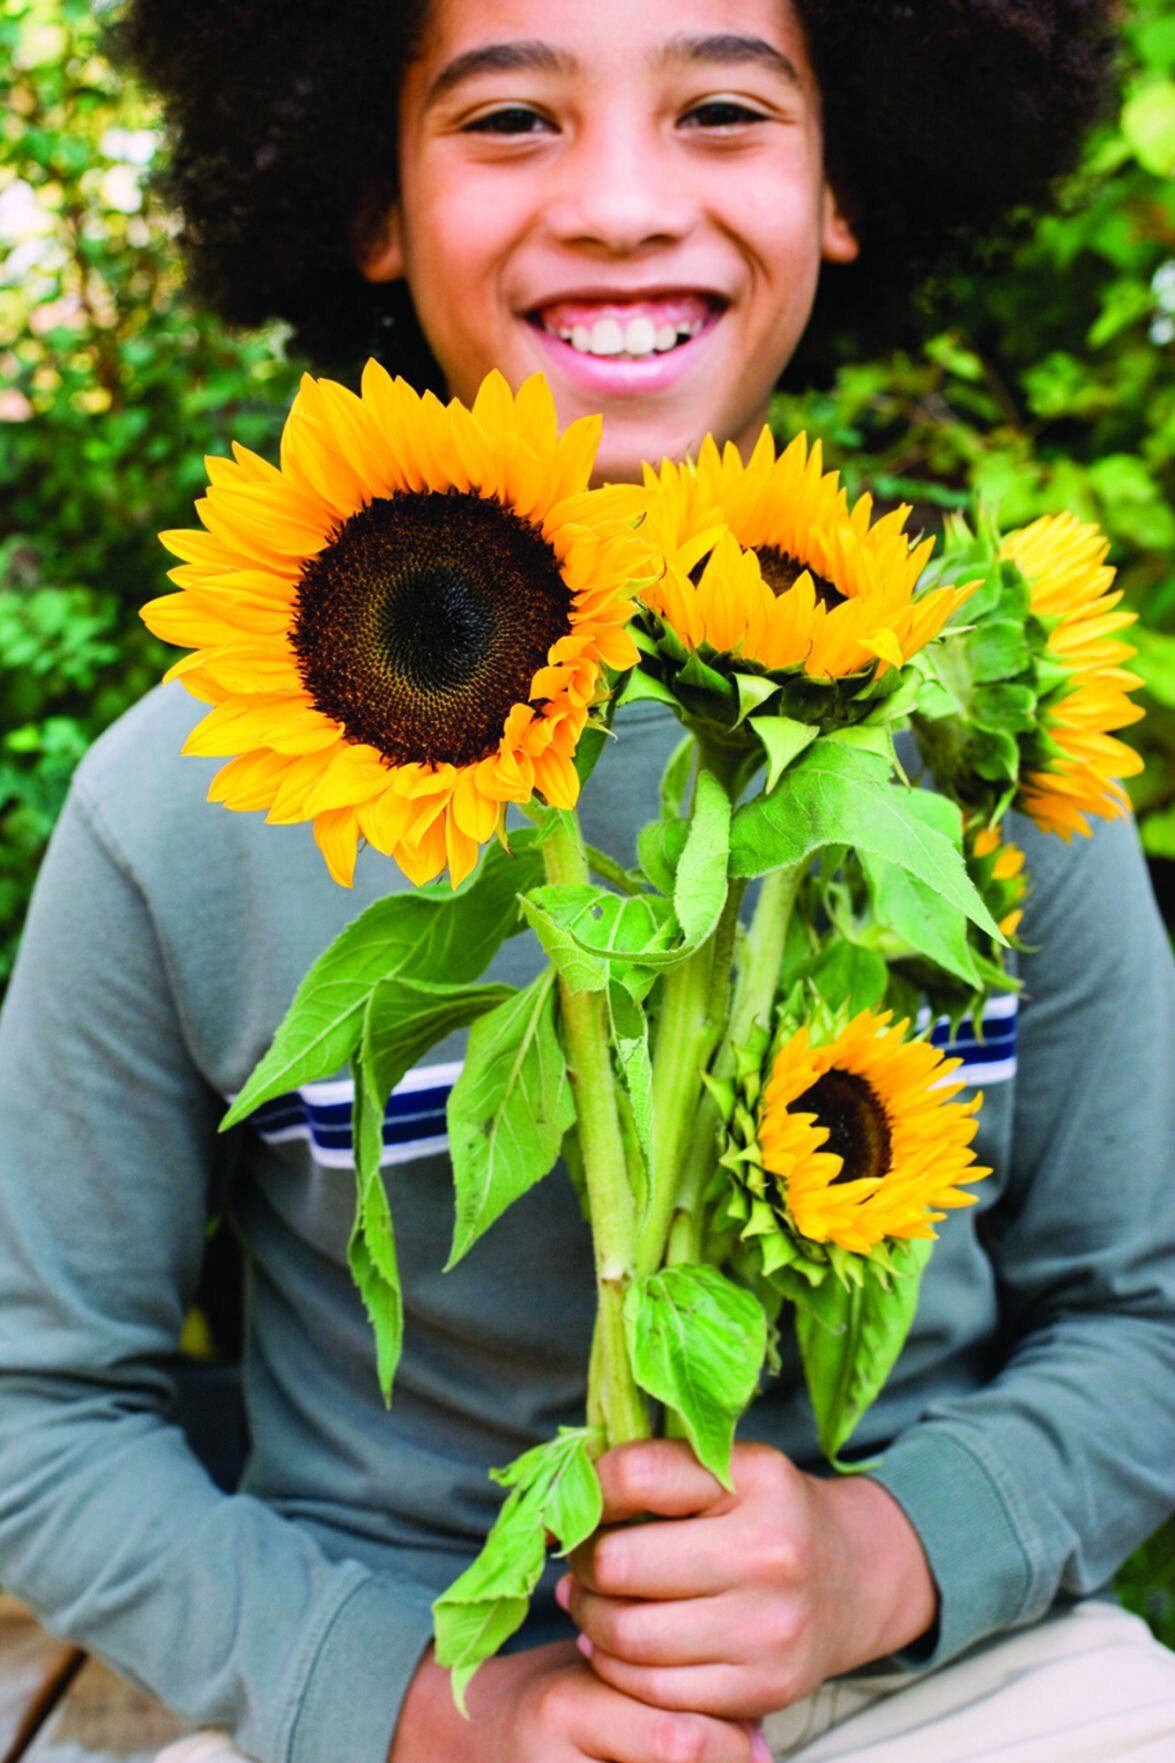 The art of growing sunflowers